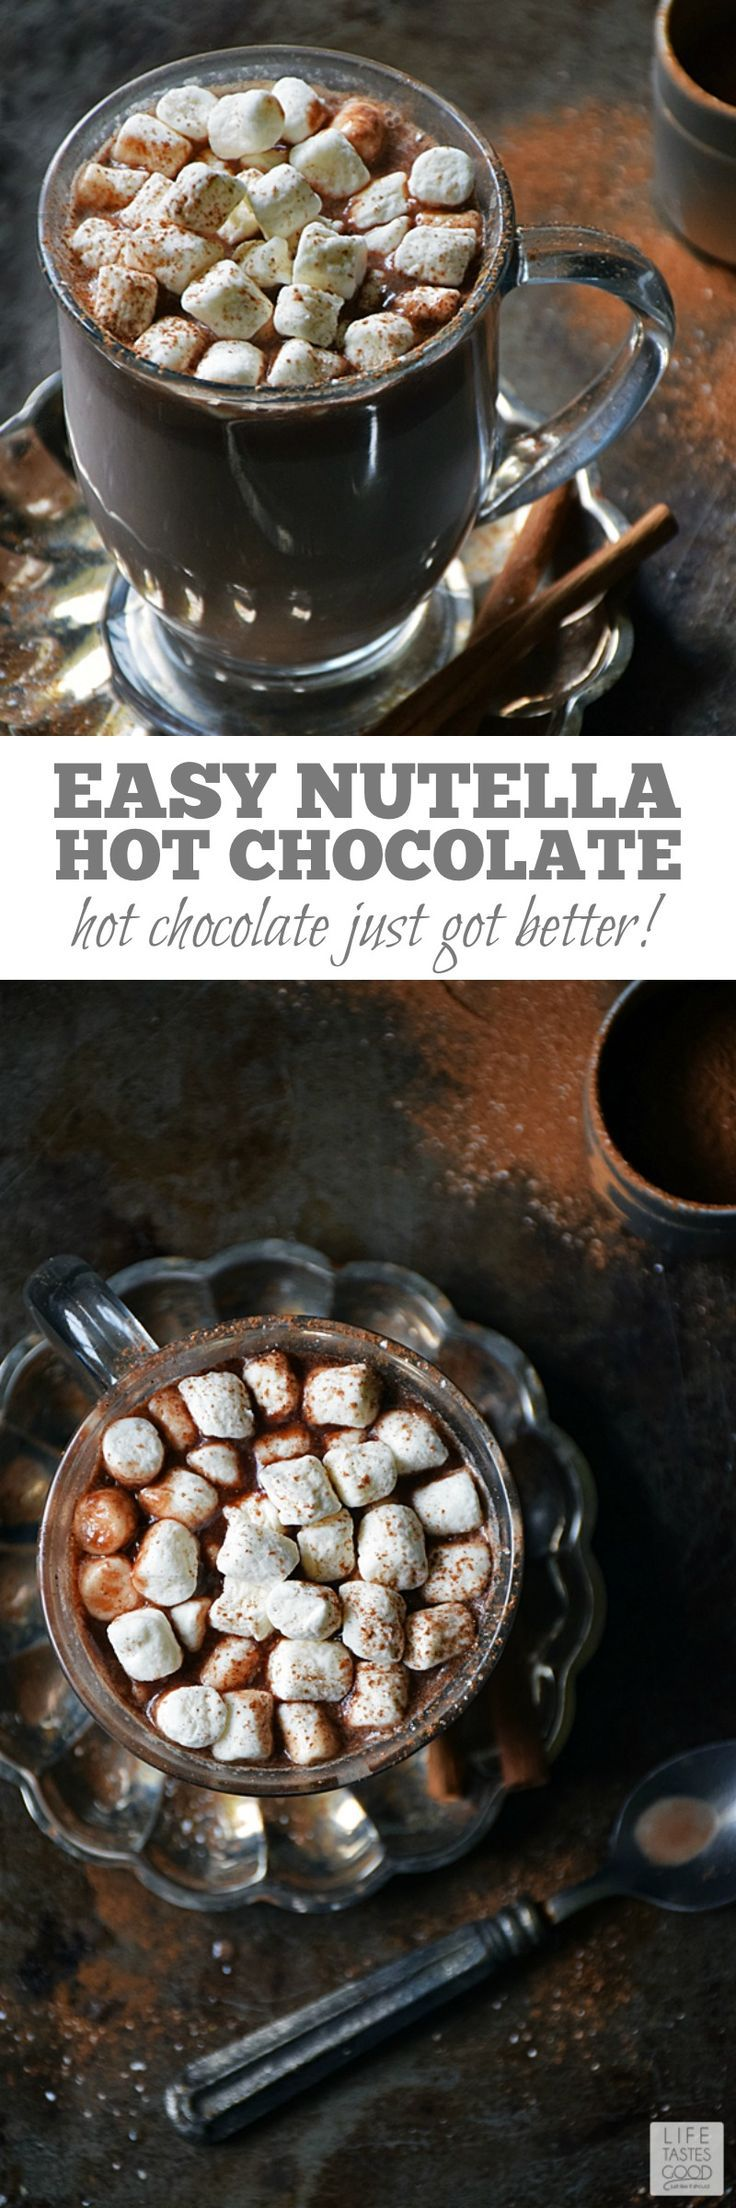 Hot chocolate just got better, y'all! Easy Nutella Hot Chocolate | by Life Tastes Good is a splendid treat I just want to sip on forever! With just two ingredients it's easy to whip up anytime! #LTGrecipes